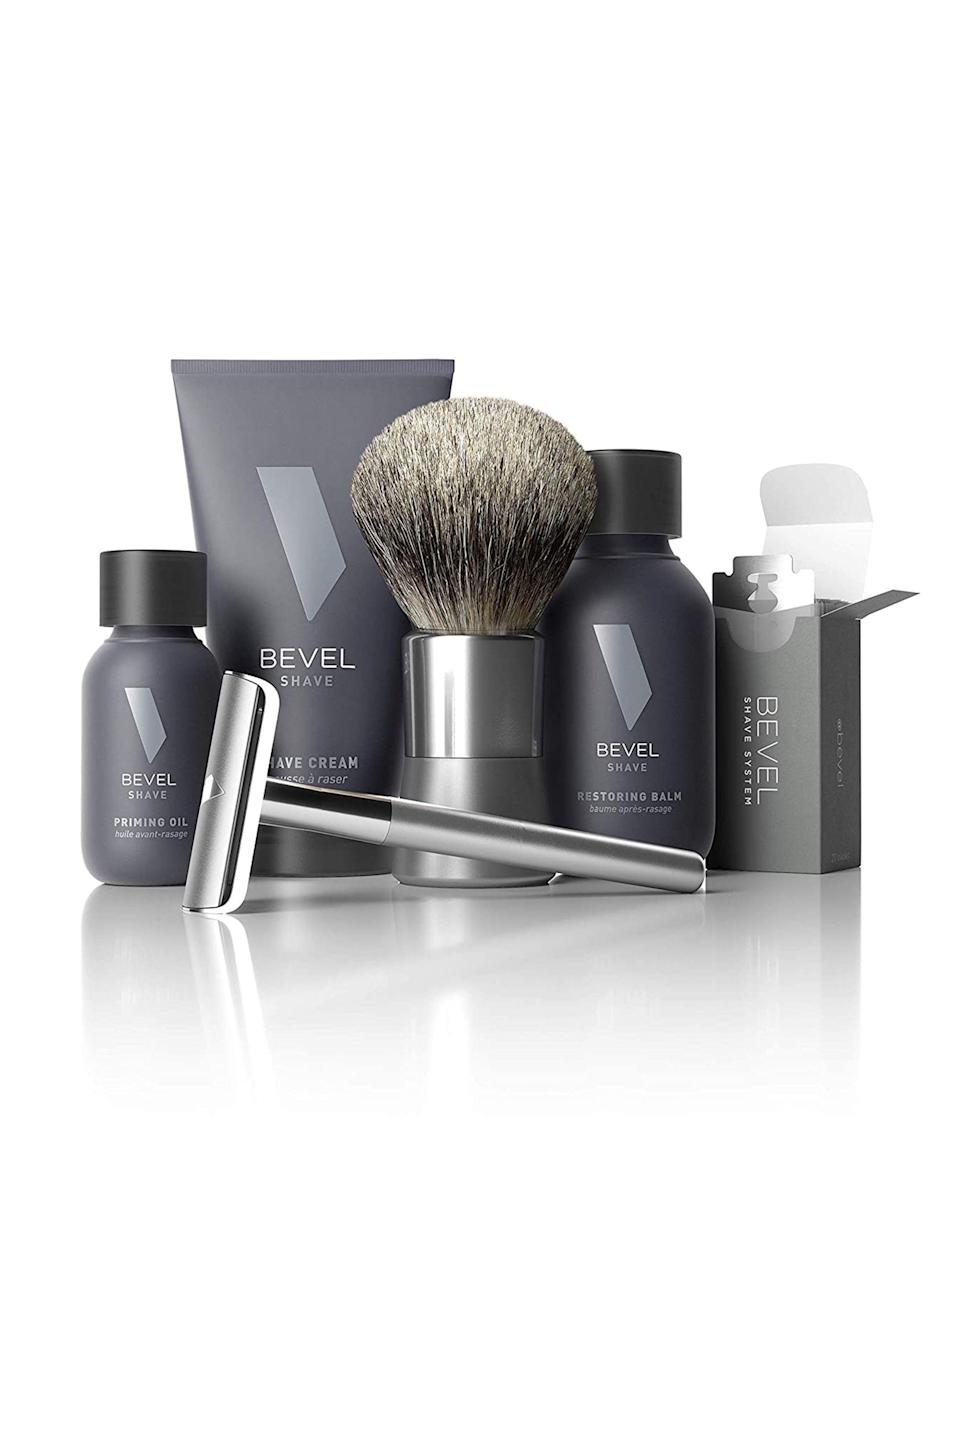 """<p><strong>Get Bevel </strong></p><p>getbevel.com</p><p><strong>$89.95</strong></p><p><a href=""""https://getbevel.com/shave-kit?featured=true&list=shave"""" rel=""""nofollow noopener"""" target=""""_blank"""" data-ylk=""""slk:Shop Now"""" class=""""link rapid-noclick-resp"""">Shop Now</a></p><p>Shaving is something most of us have to do every few weeks and Bevel makes it easy with their monthly shave subscription. The kit comes with priming oil, shaving stick with blades, and shaving cream. Though the products are geared towards men, ladies are sure to get a <a href=""""https://www.elle.com/beauty/makeup-skin-care/a28848947/hair-removal-expert-tips-products-pole-dancers/"""" rel=""""nofollow noopener"""" target=""""_blank"""" data-ylk=""""slk:smooth"""" class=""""link rapid-noclick-resp"""">smooth</a> shave from this kit too.</p>"""